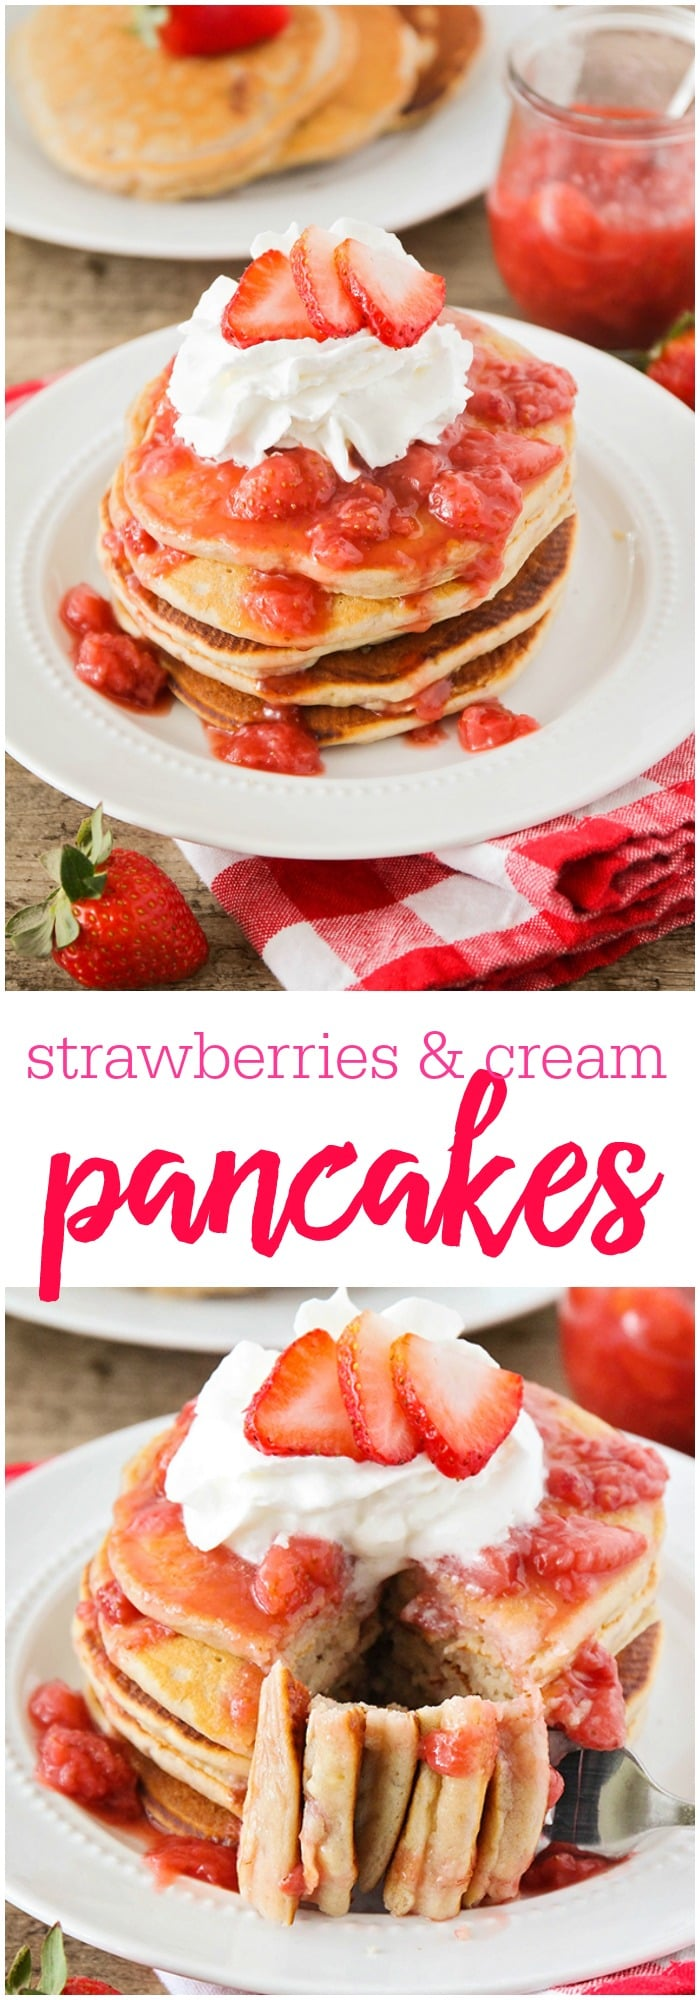 Strawberries & Cream Pancakes - These strawberries and cream pancakes are perfect for celebrating spring! They're bursting with strawberry flavor and topped with an amazing homemade strawberry sauce. They'd be wonderful for a Mother's Day brunch, or a fun Saturday breakfast.